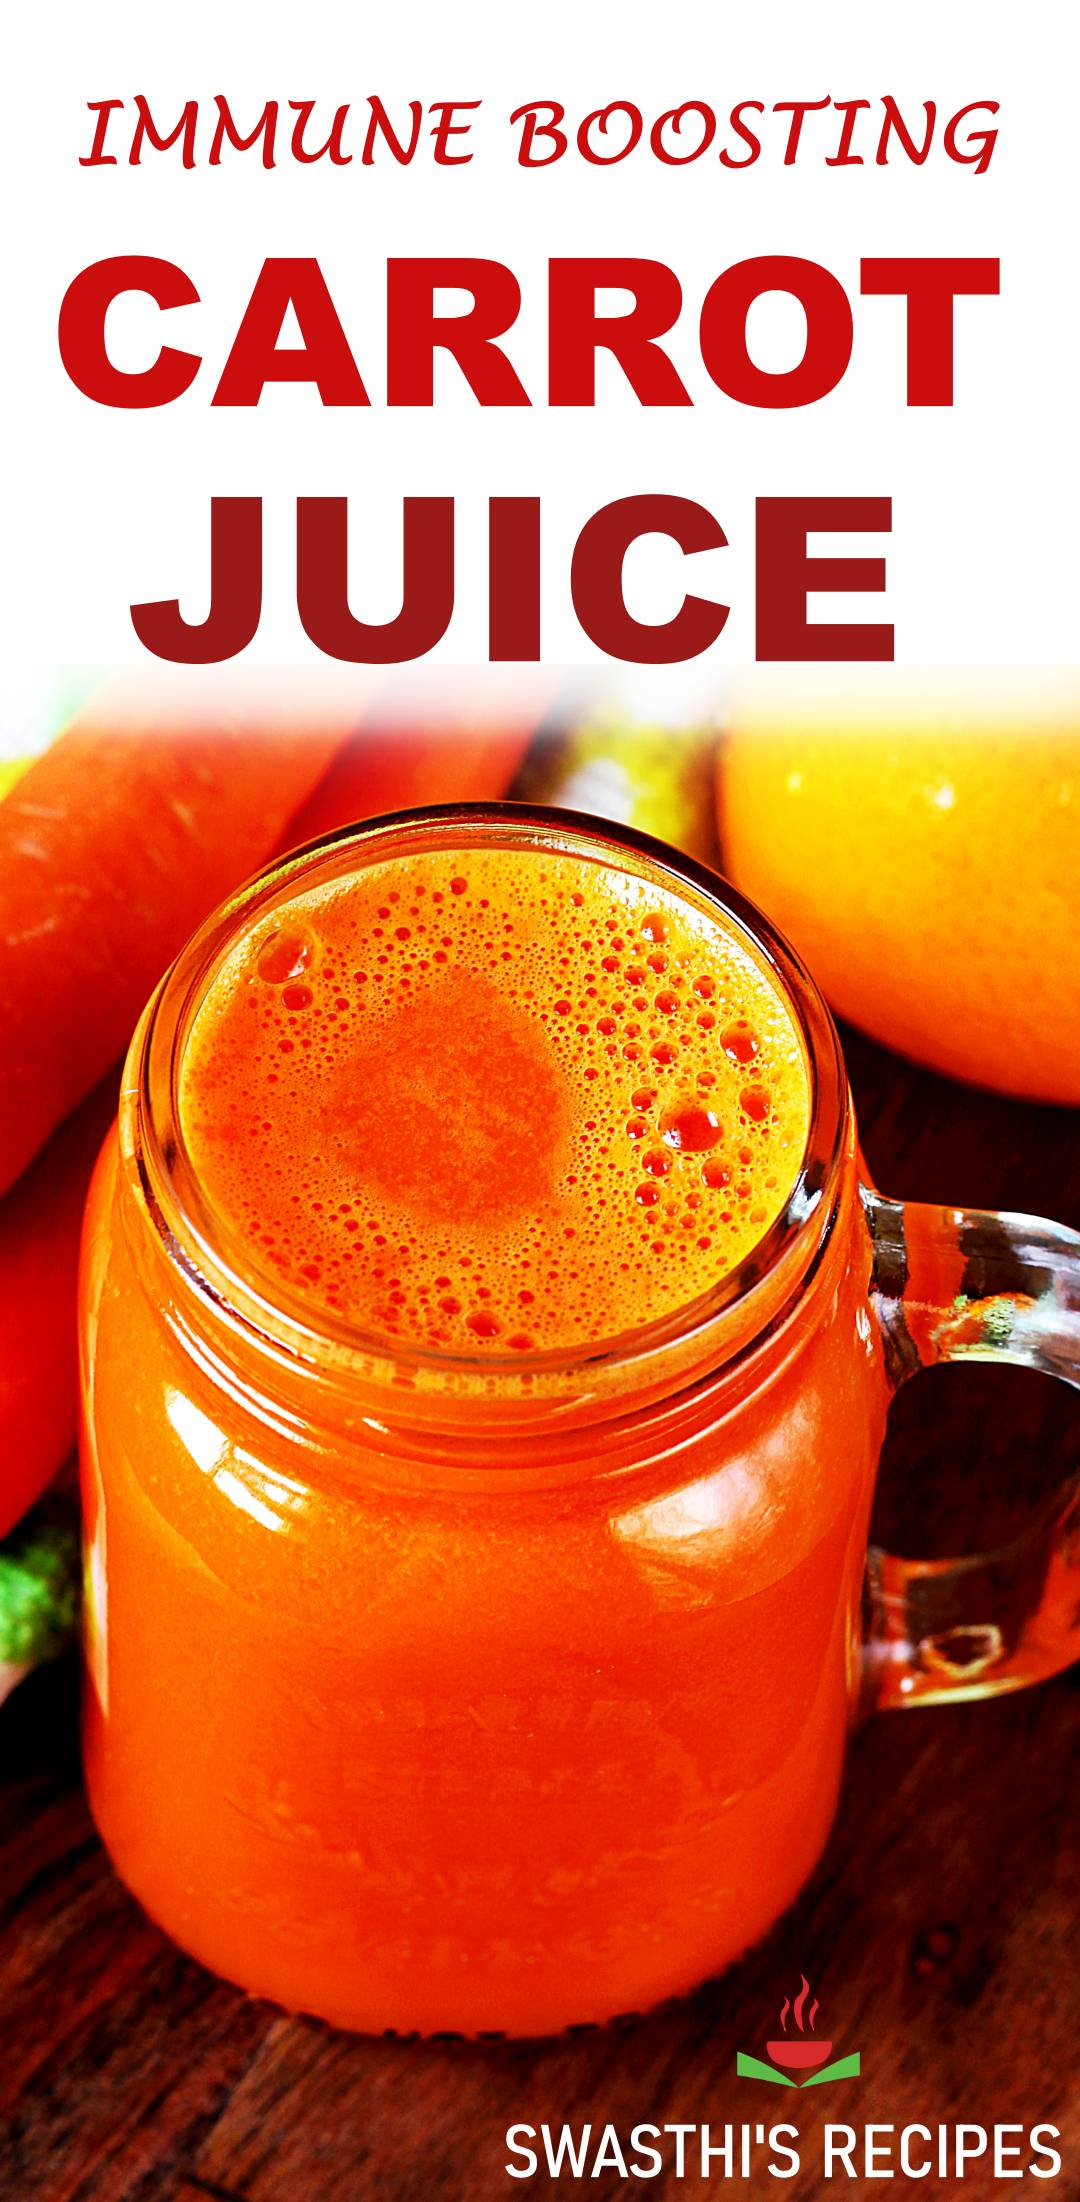 Carrot juice recipe (in blender & juicer)